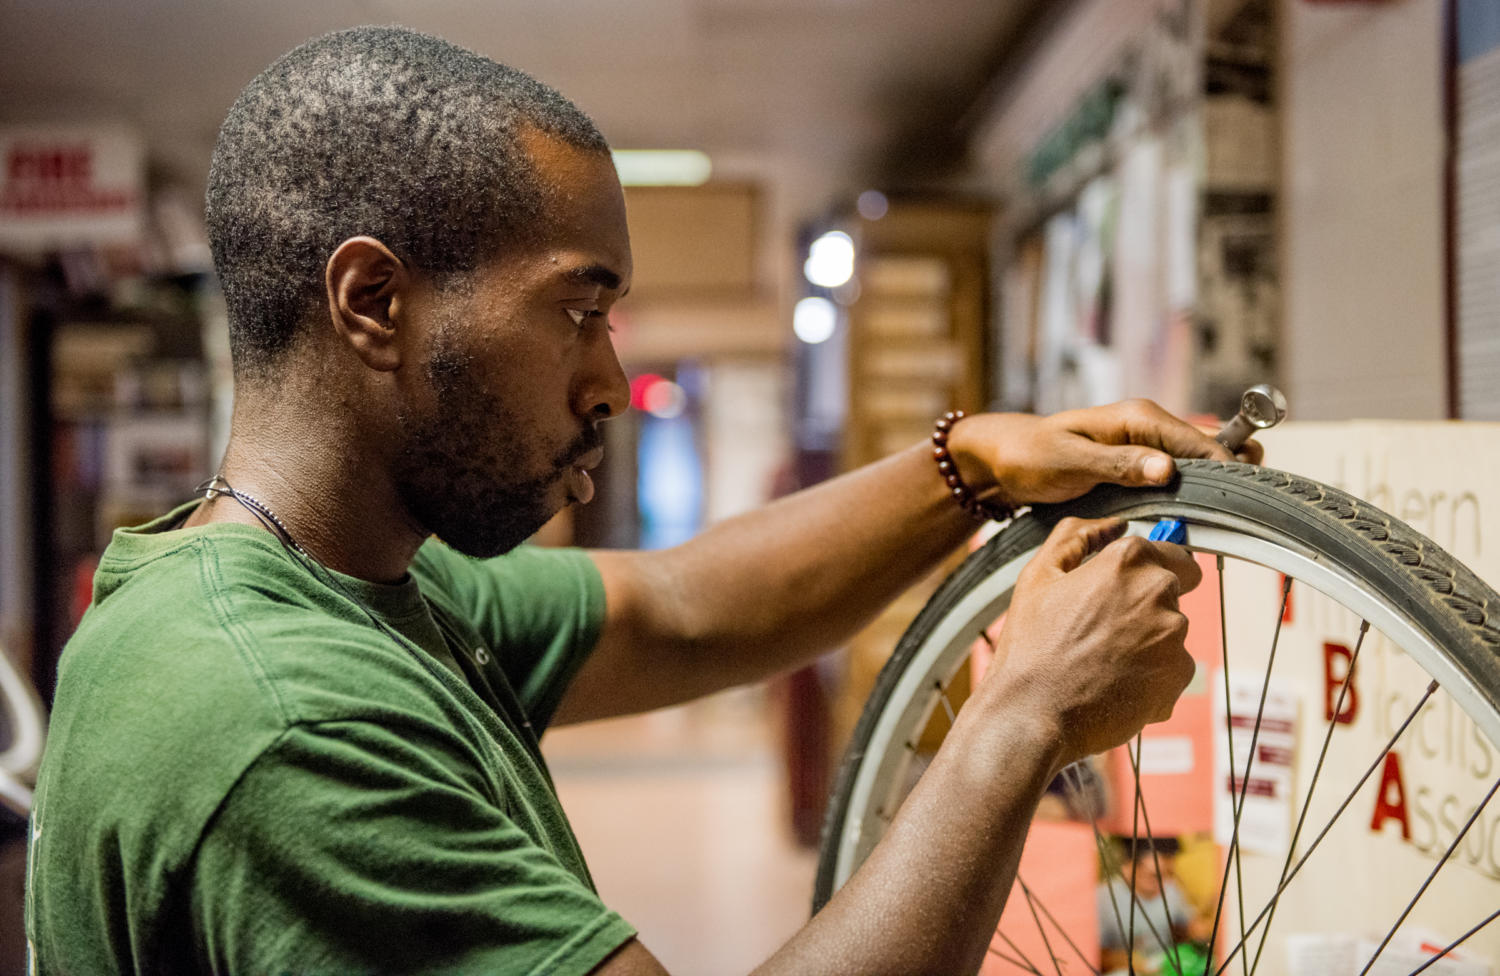 Darrien Moore, senior aviation major, of Blue Island, takes a wheel off of a student's bike Monday, Aug. 28, at Saluki Spokes in the Student Center. Saluki Spokes provides free to use tools in order to get students bicycles back up and running. (Dylan Nelson | @DylanNelson99)